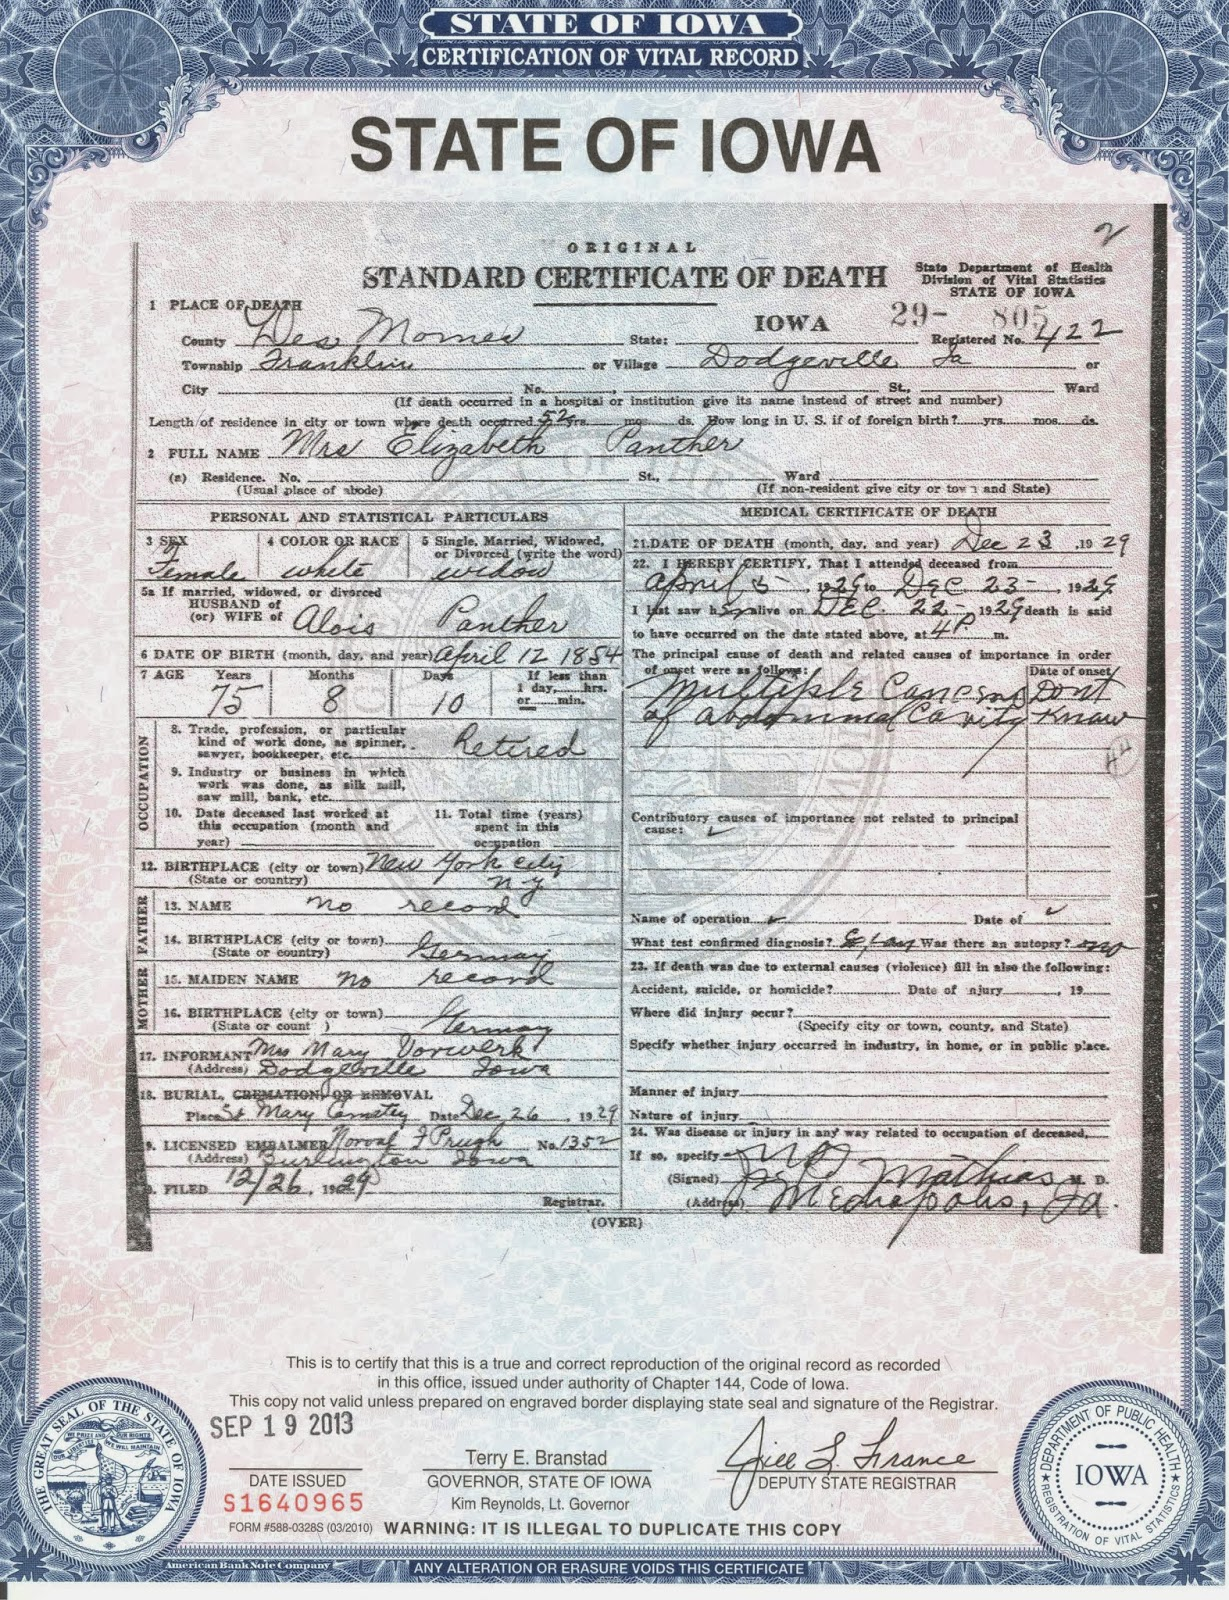 Matts genealogy blog elizabeth dunzingers death certificate i received an official certified copy of elizabeth dunzinger panthers death certificate from the state of iowa department of vital records xflitez Choice Image